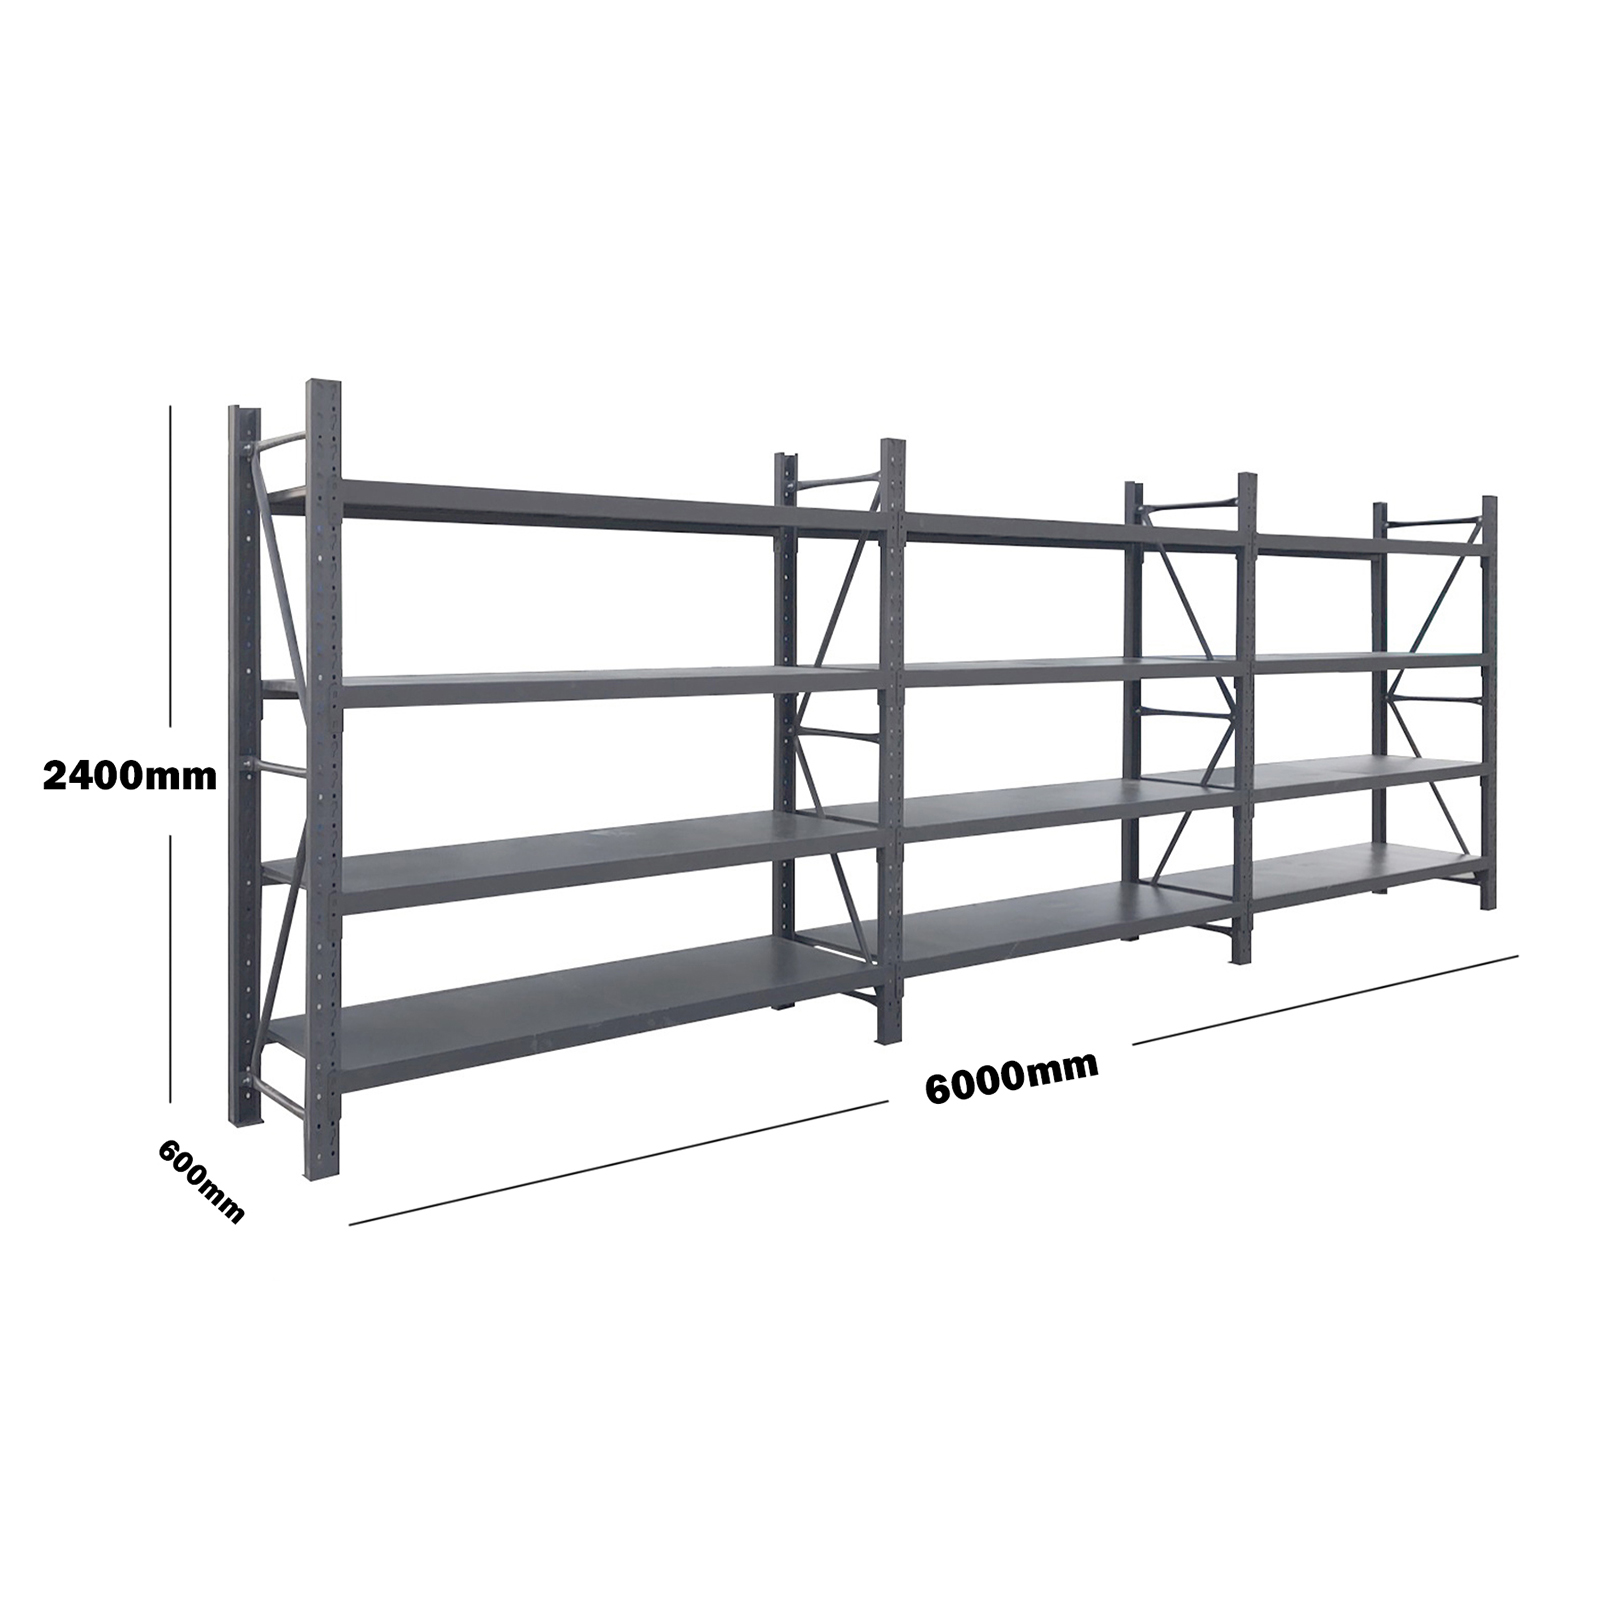 6M(L) x 2.4M(H) x 0.6M(D) Shelves Racking Metal Steel Charcoal 6024C